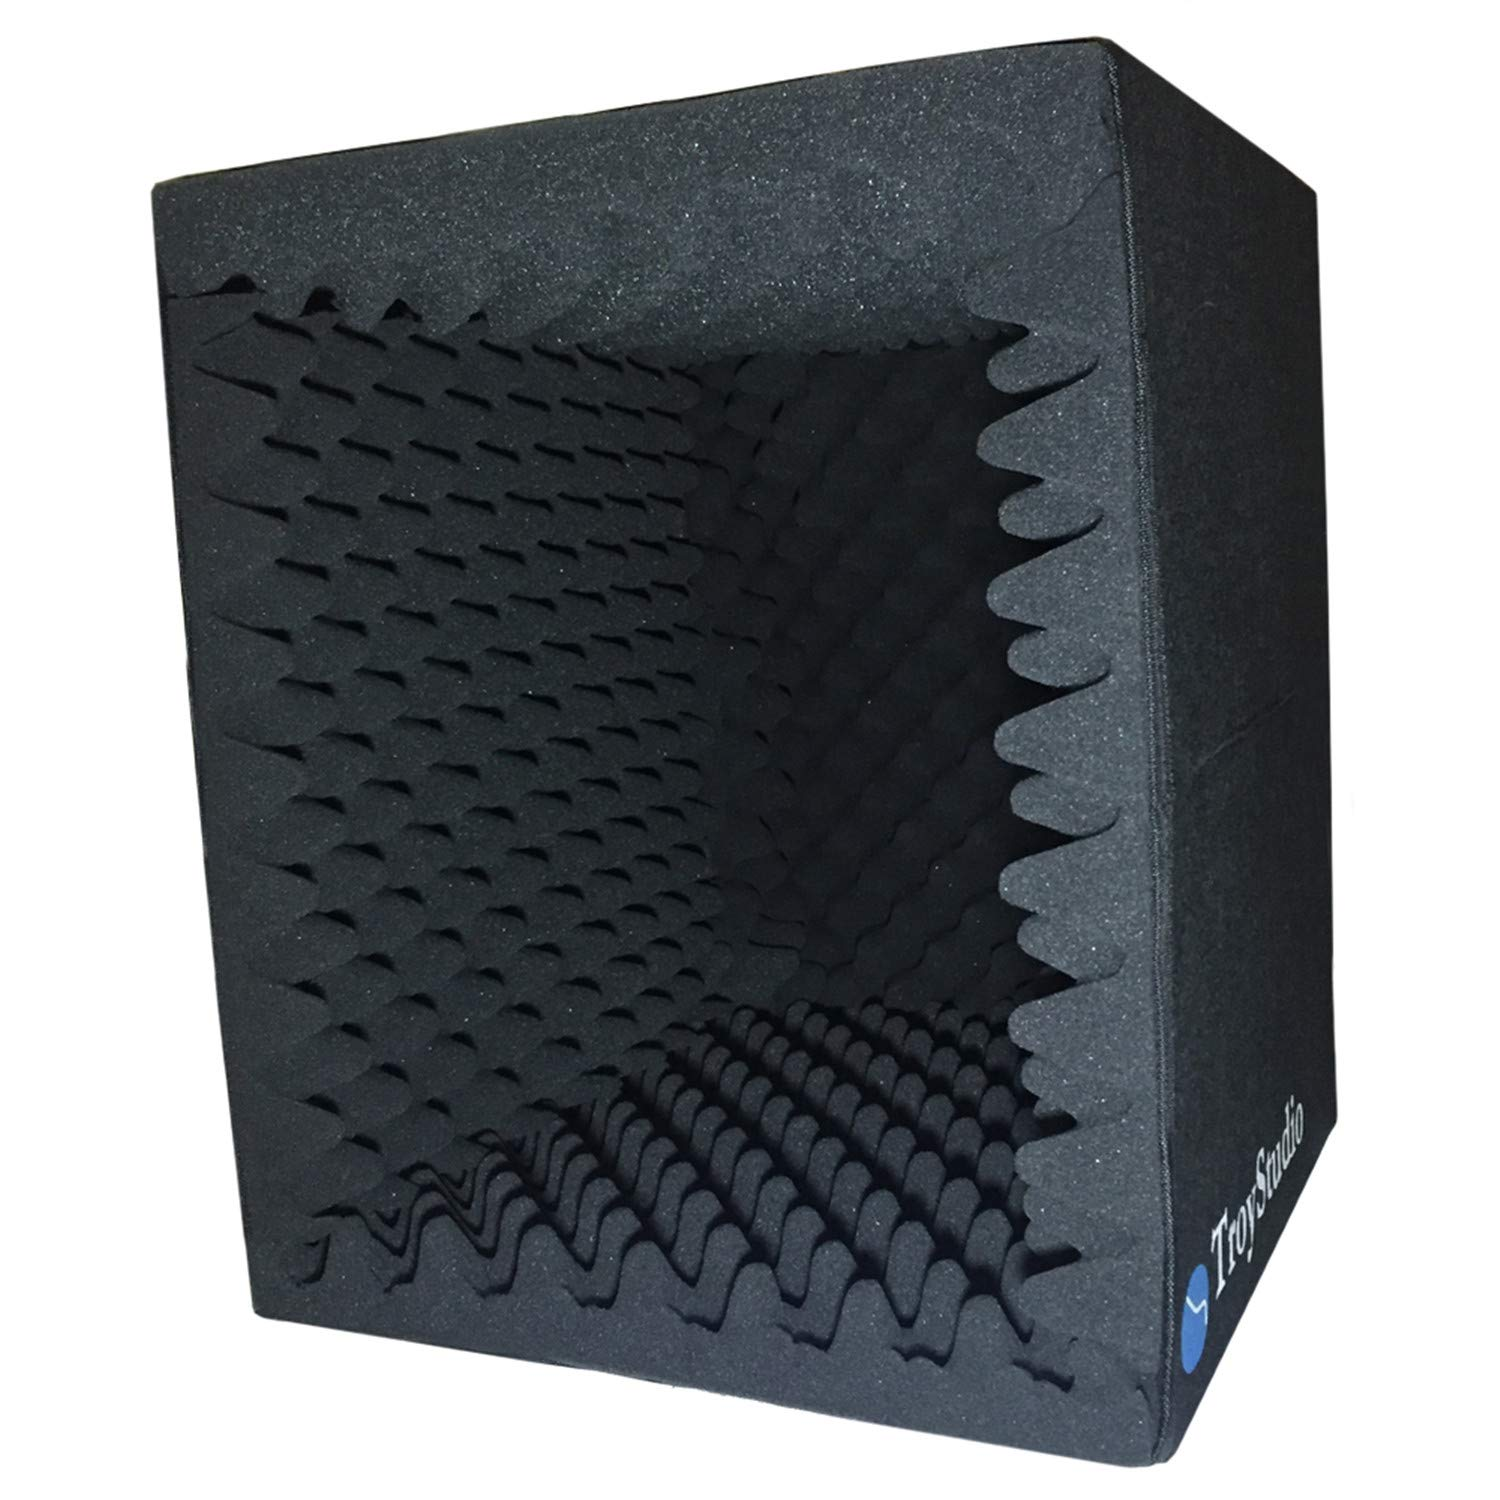 TroyStudio Portable Sound Recording Vocal Booth Box - |Reflection Filter & Microphone Isolation Shied| - |Large, Foldable, Stand Mountable, Super Dense Sound Absorbing Foam|(Black)